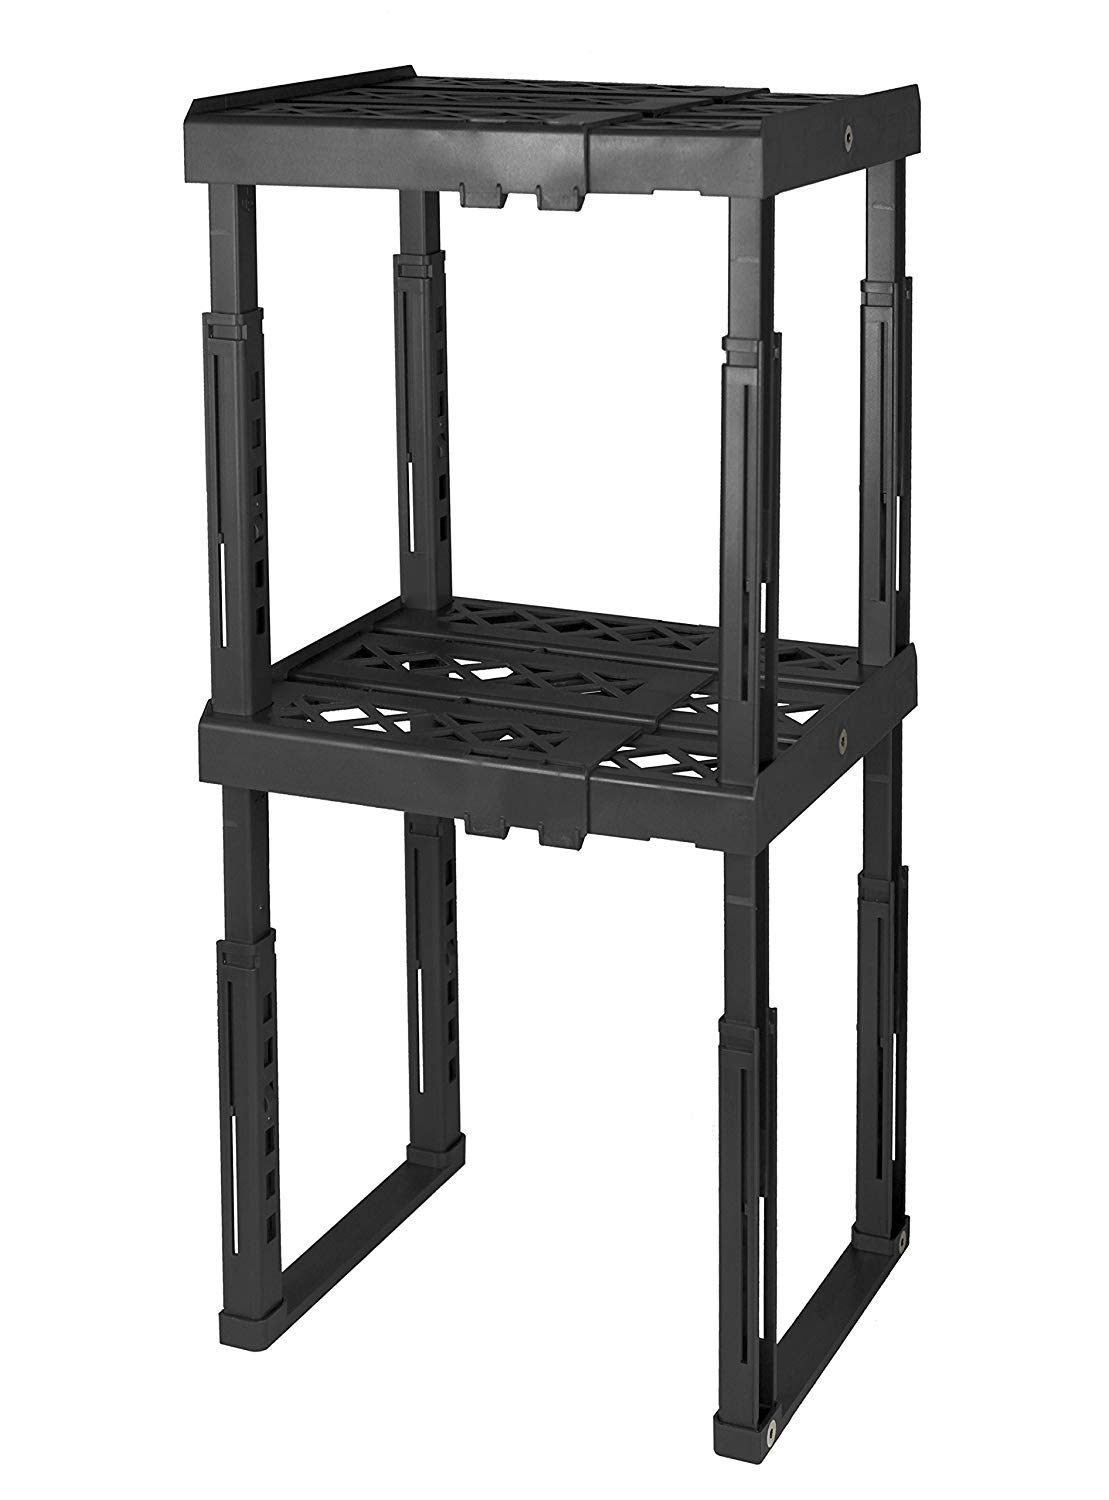 Tools for School Locker Shelf. Adjustable Height and Width. Stackable and Heavy Duty. Holds 40 lbs. per Shelf (2 Pack, Black)